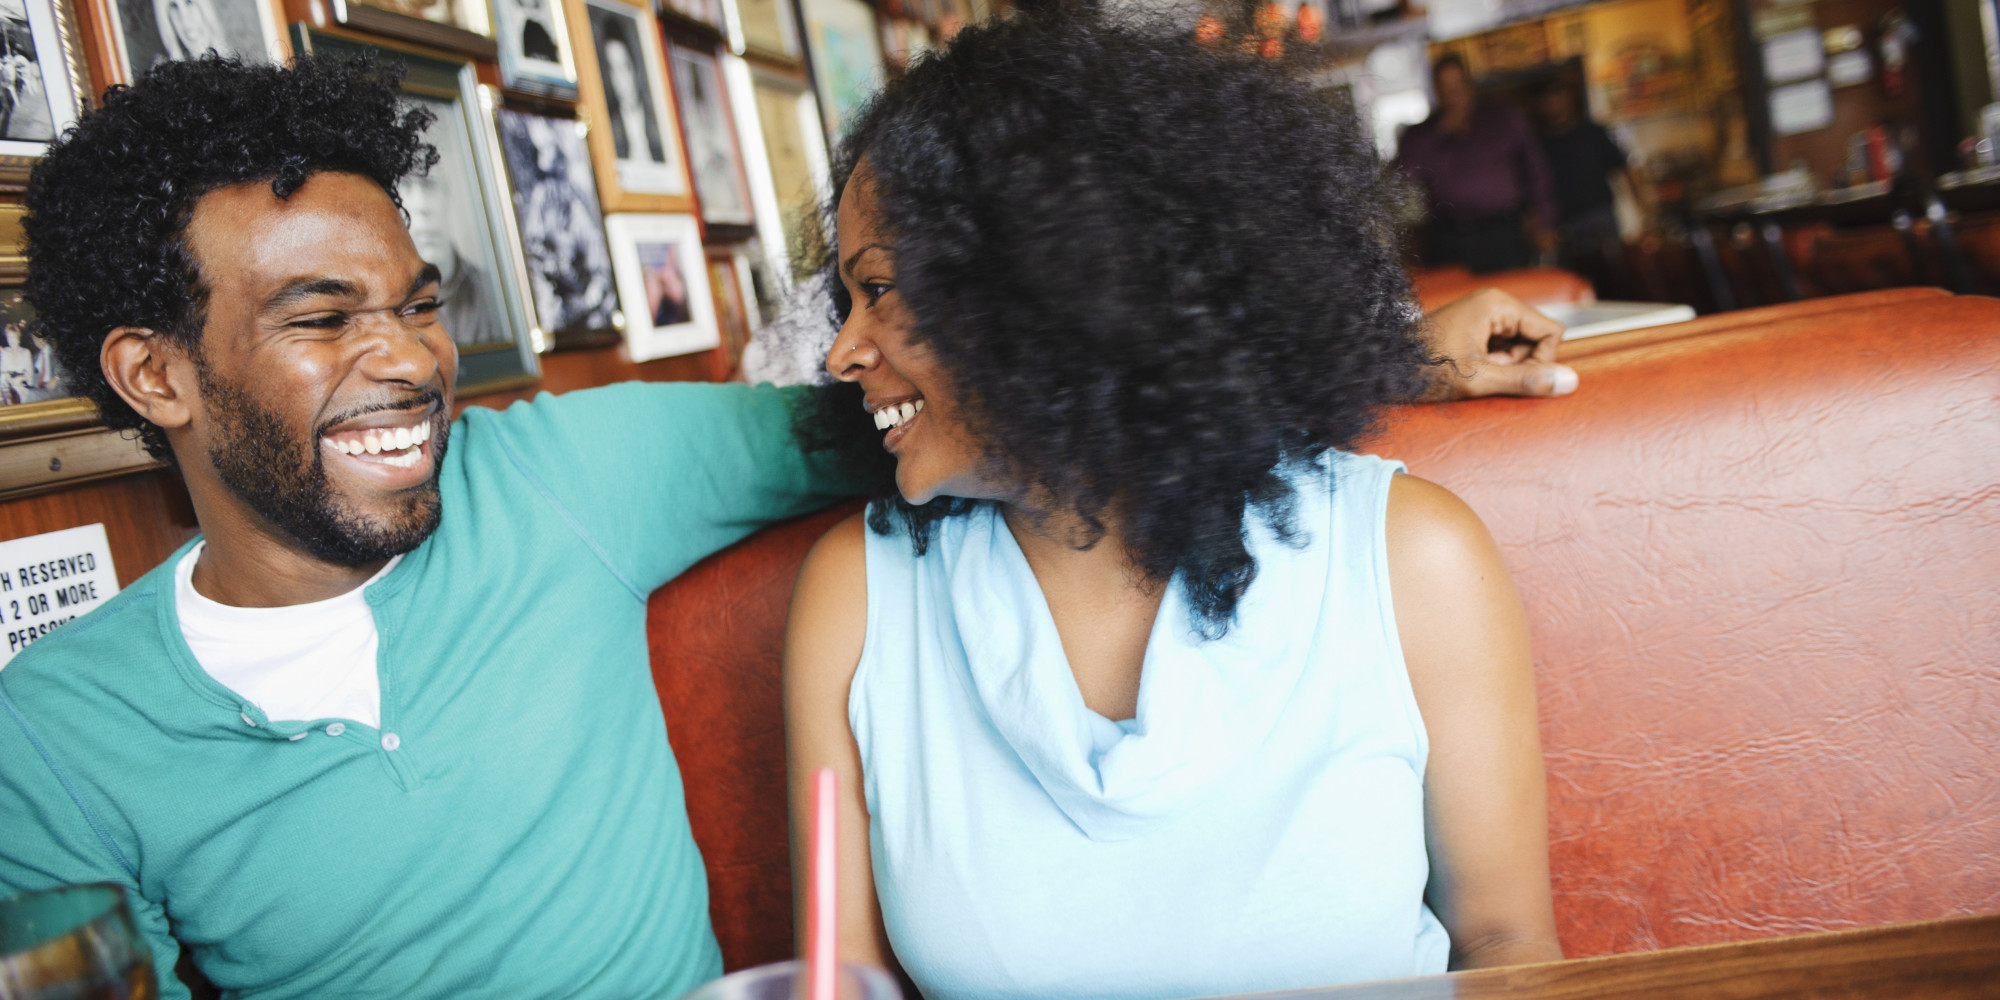 Meet African American Singles on FirstMet - Online Dating Made Easy